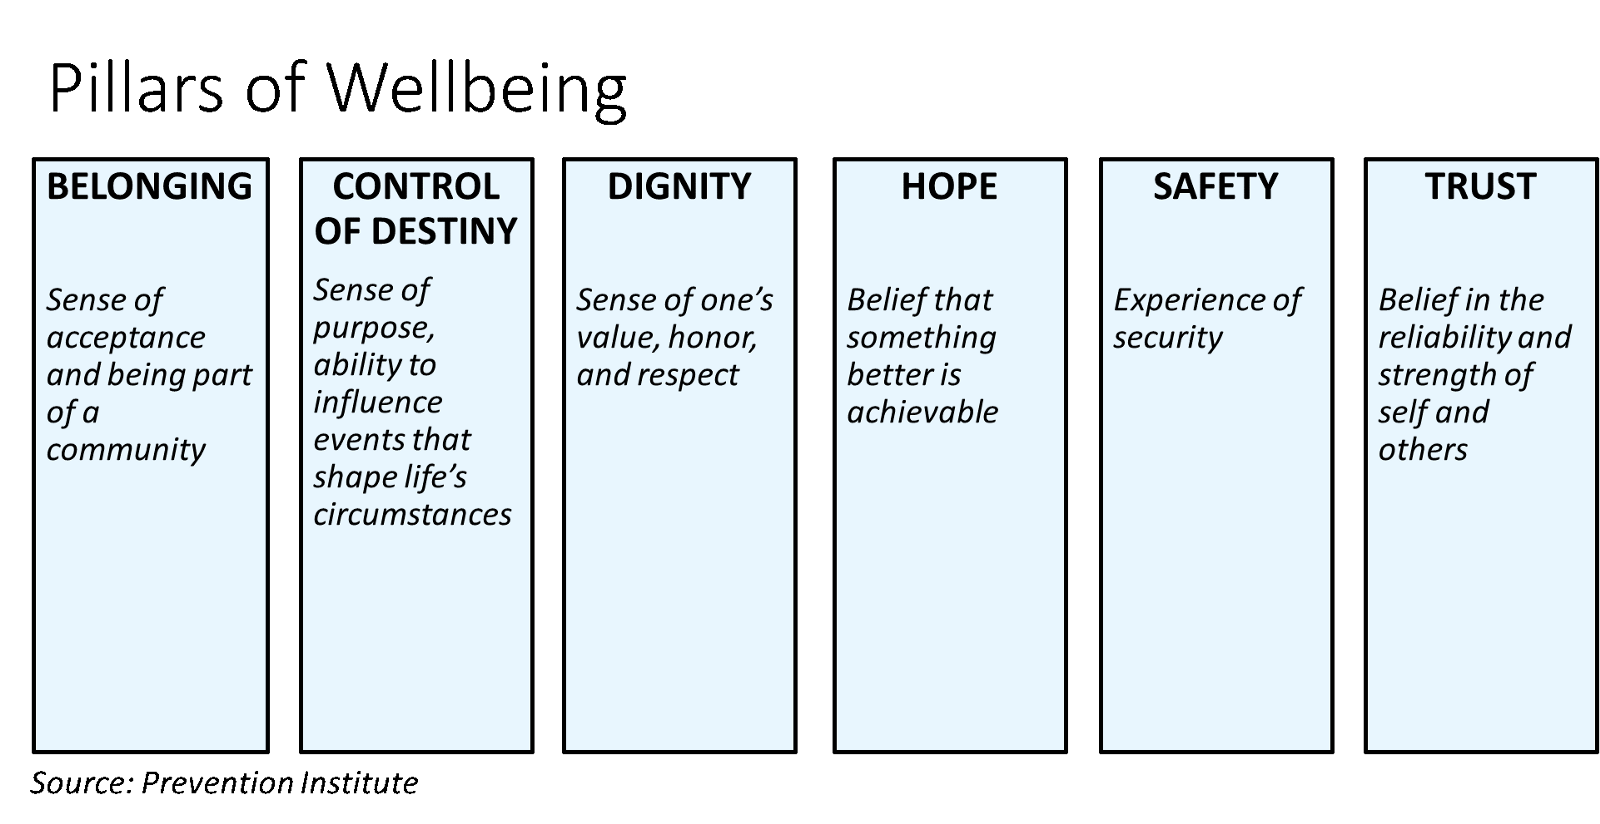 chart showing the pillars of well-being: belonging, control, dignity, hope, safety, trust